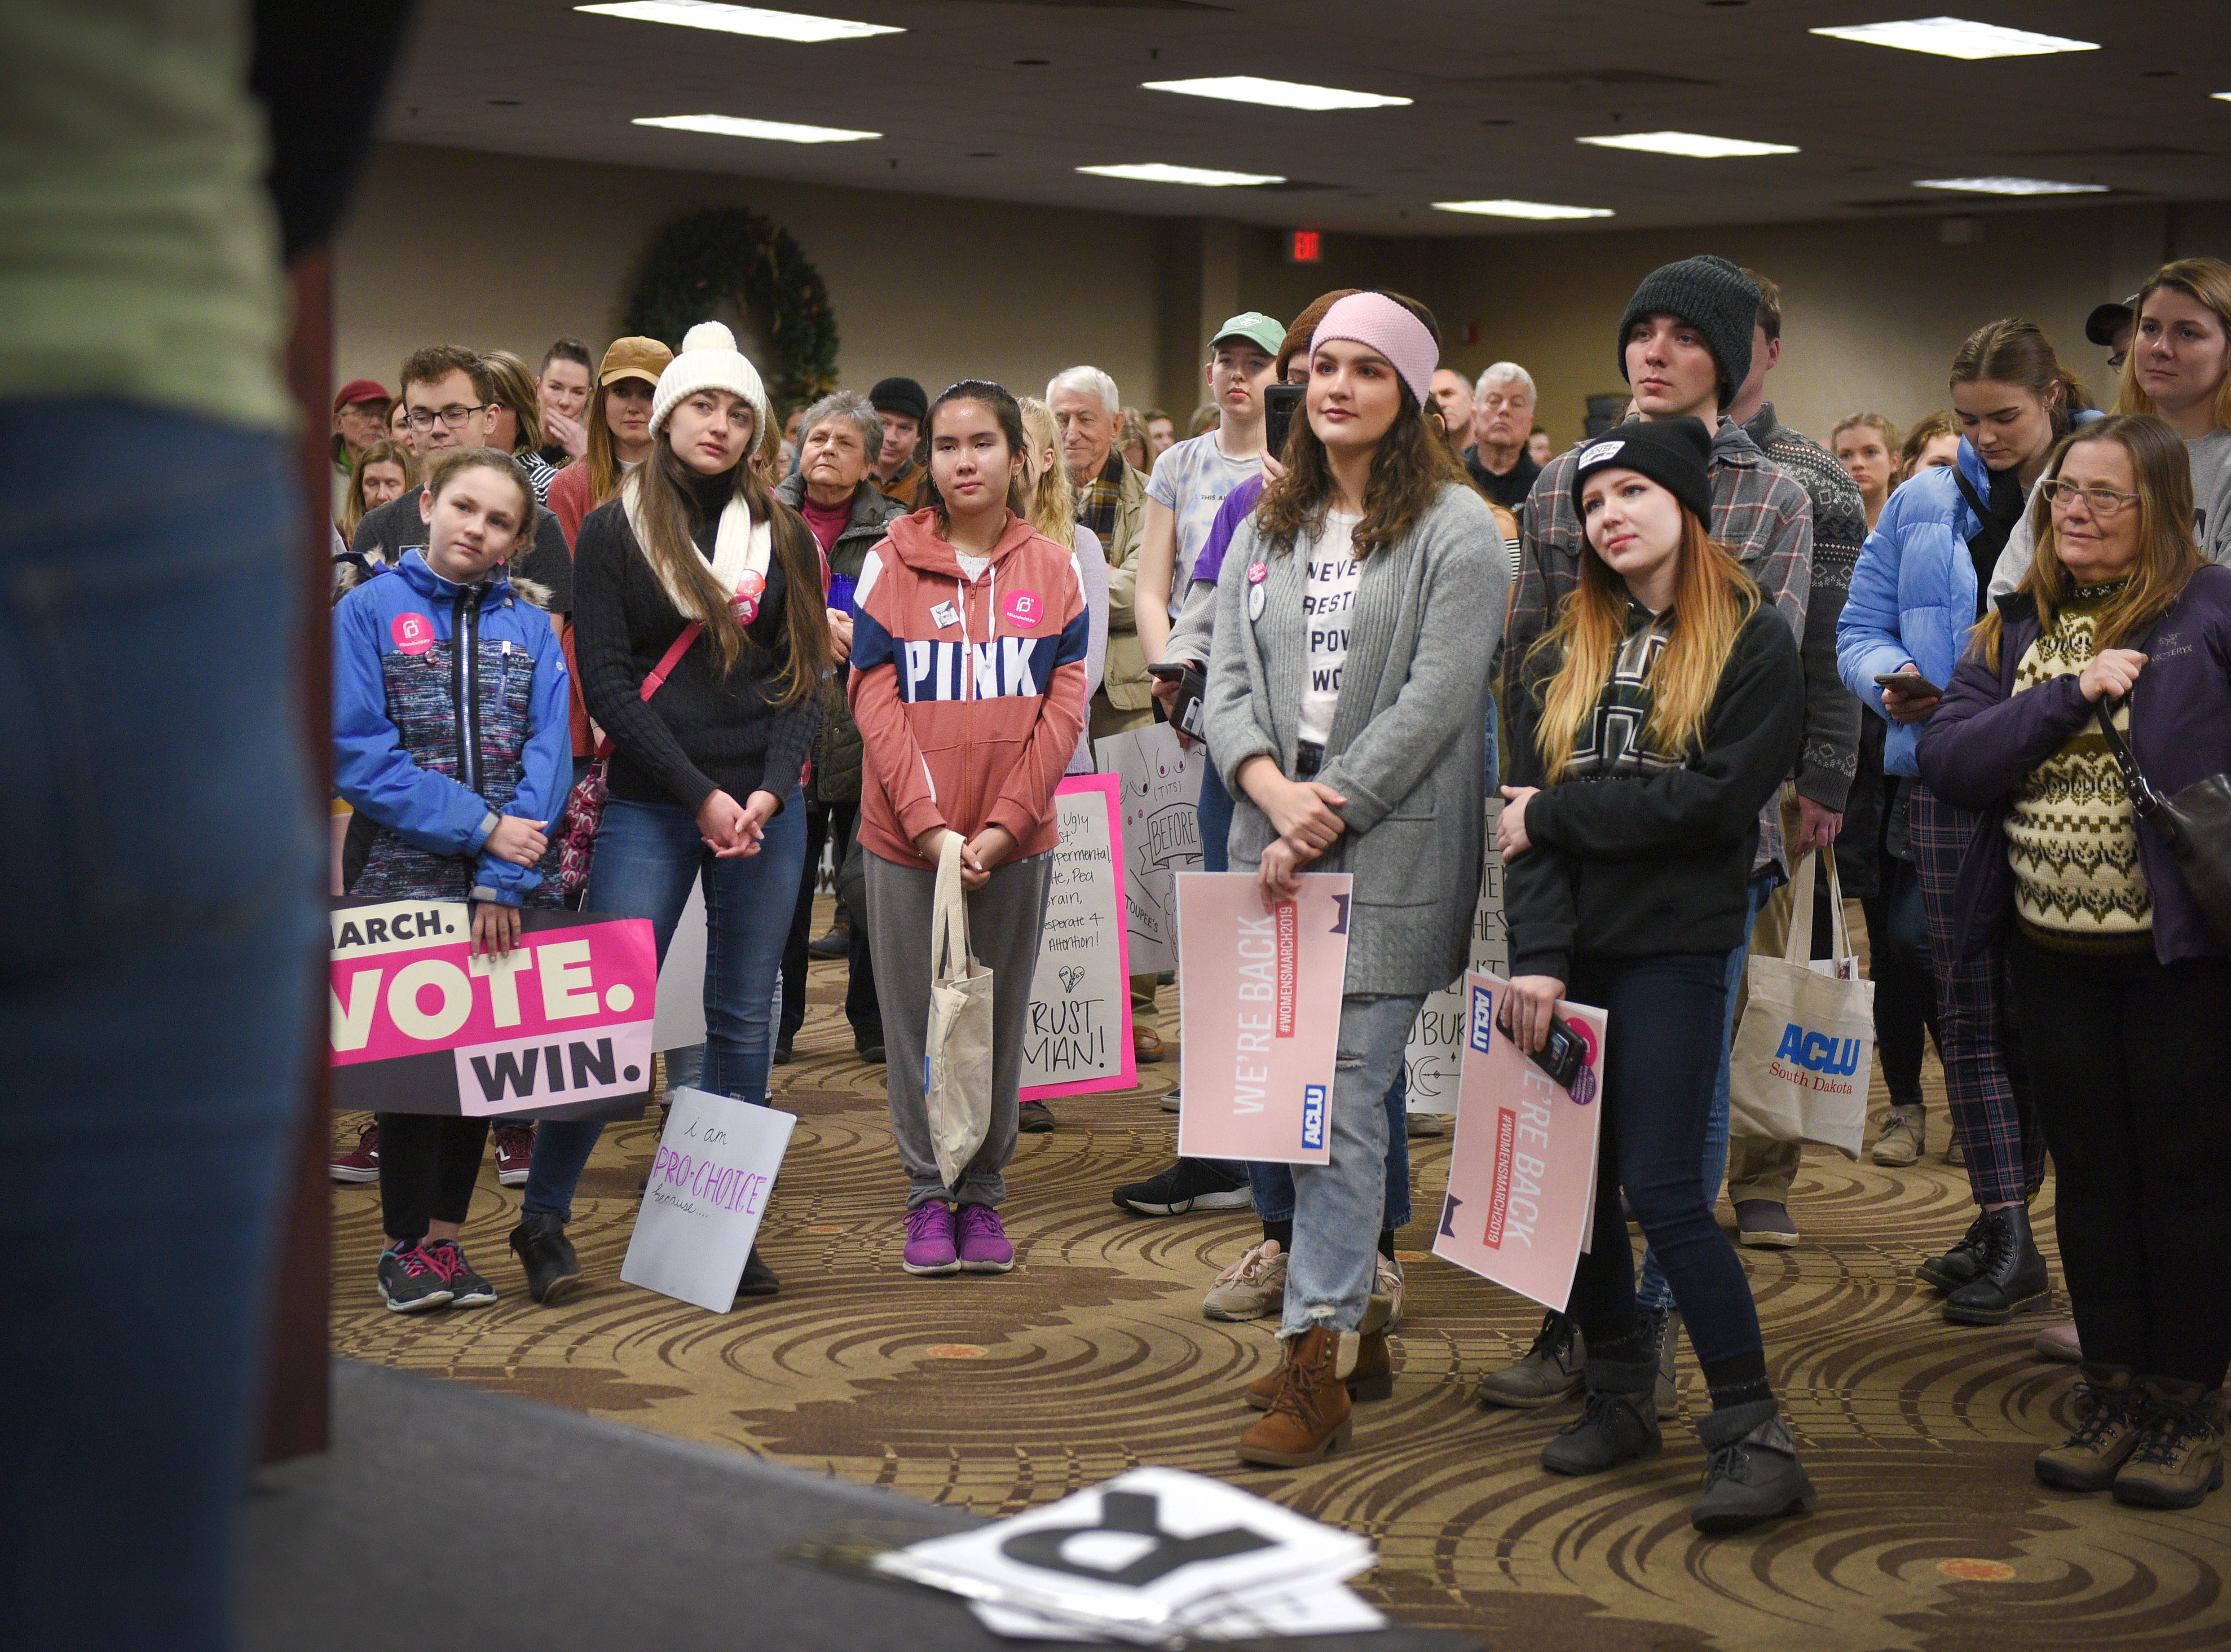 People gather for the Women's March Saturday, Jan. 19, at the Downtown Sioux Falls Holiday Inn-City Centre in Sioux Falls.